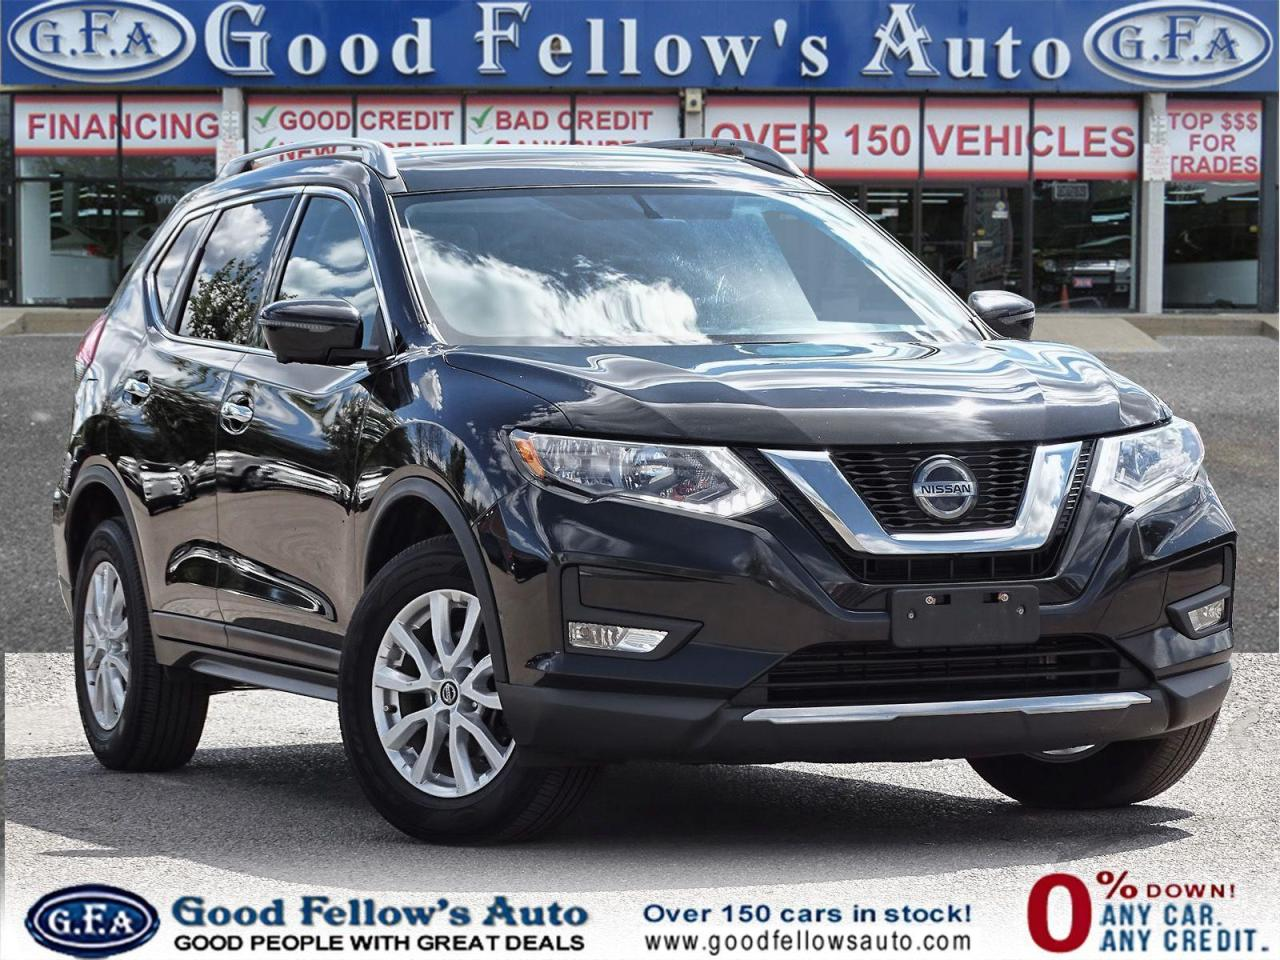 used 2018 Nissan Rogue car, priced at $20,400